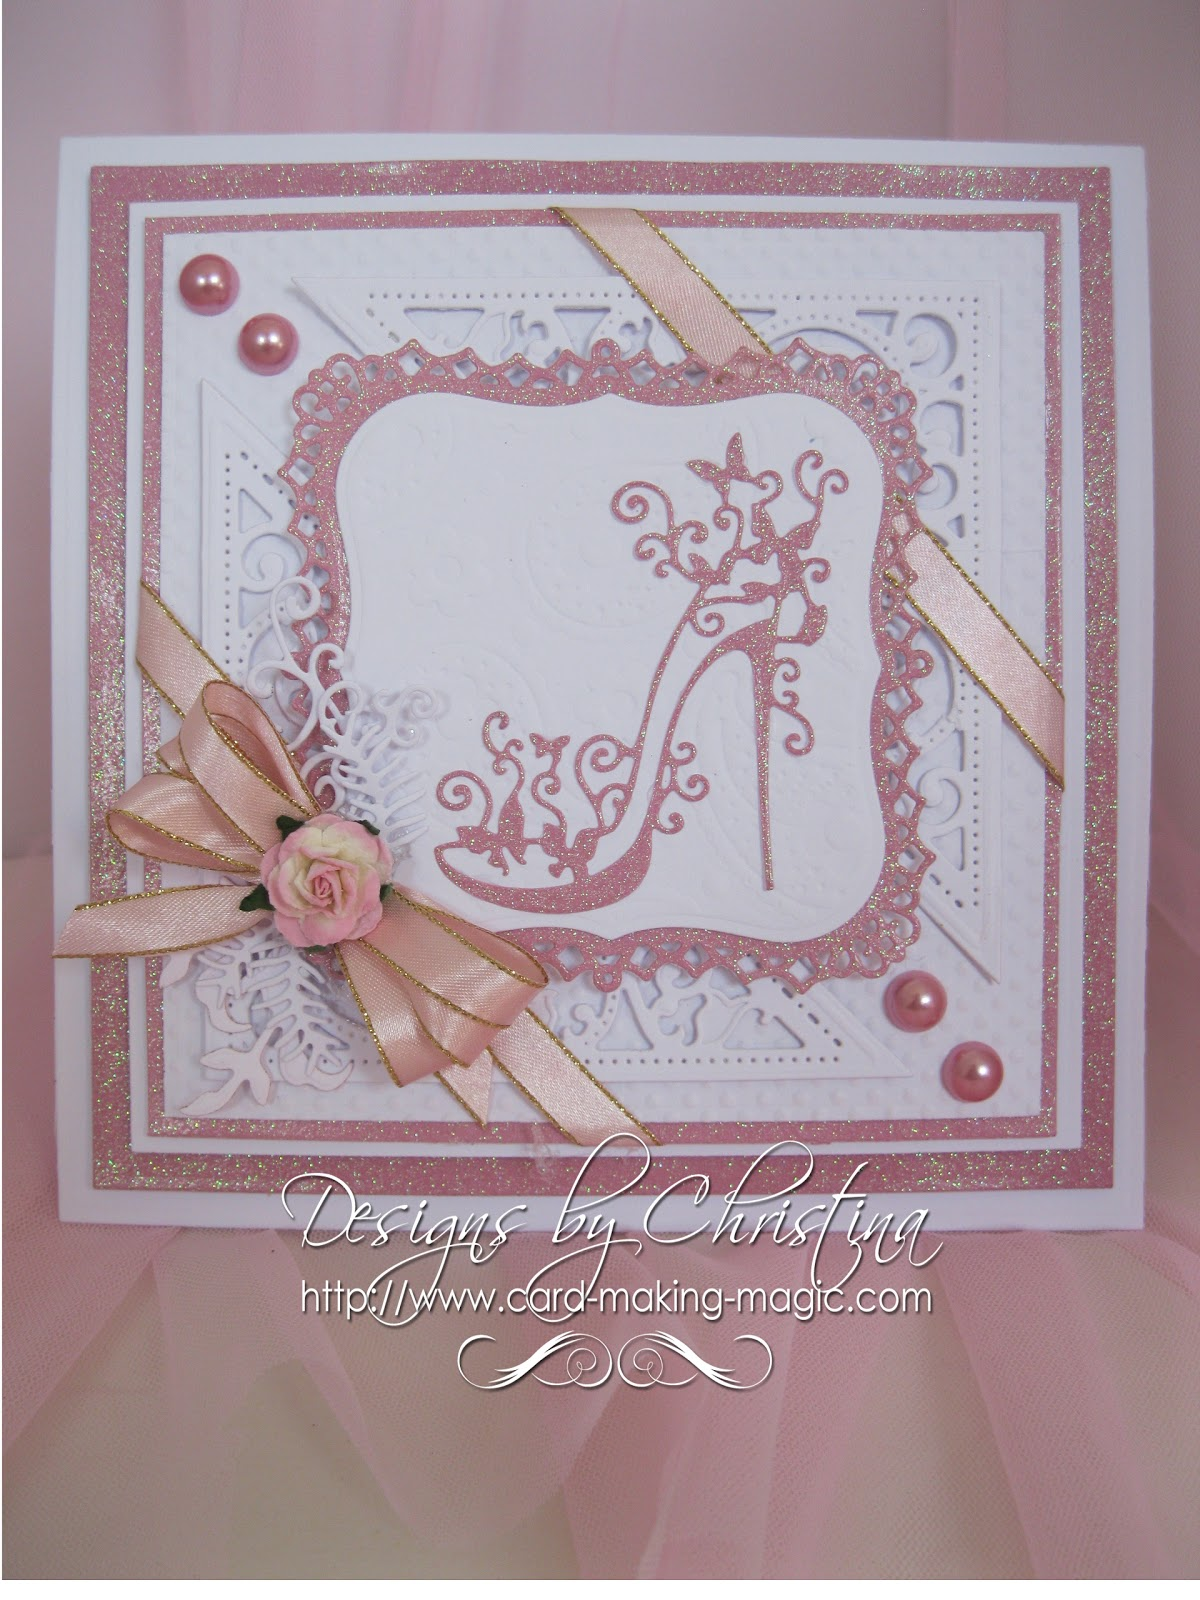 Awesome Lace Card Making Ideas Part - 2: Tattered Lace Dies .